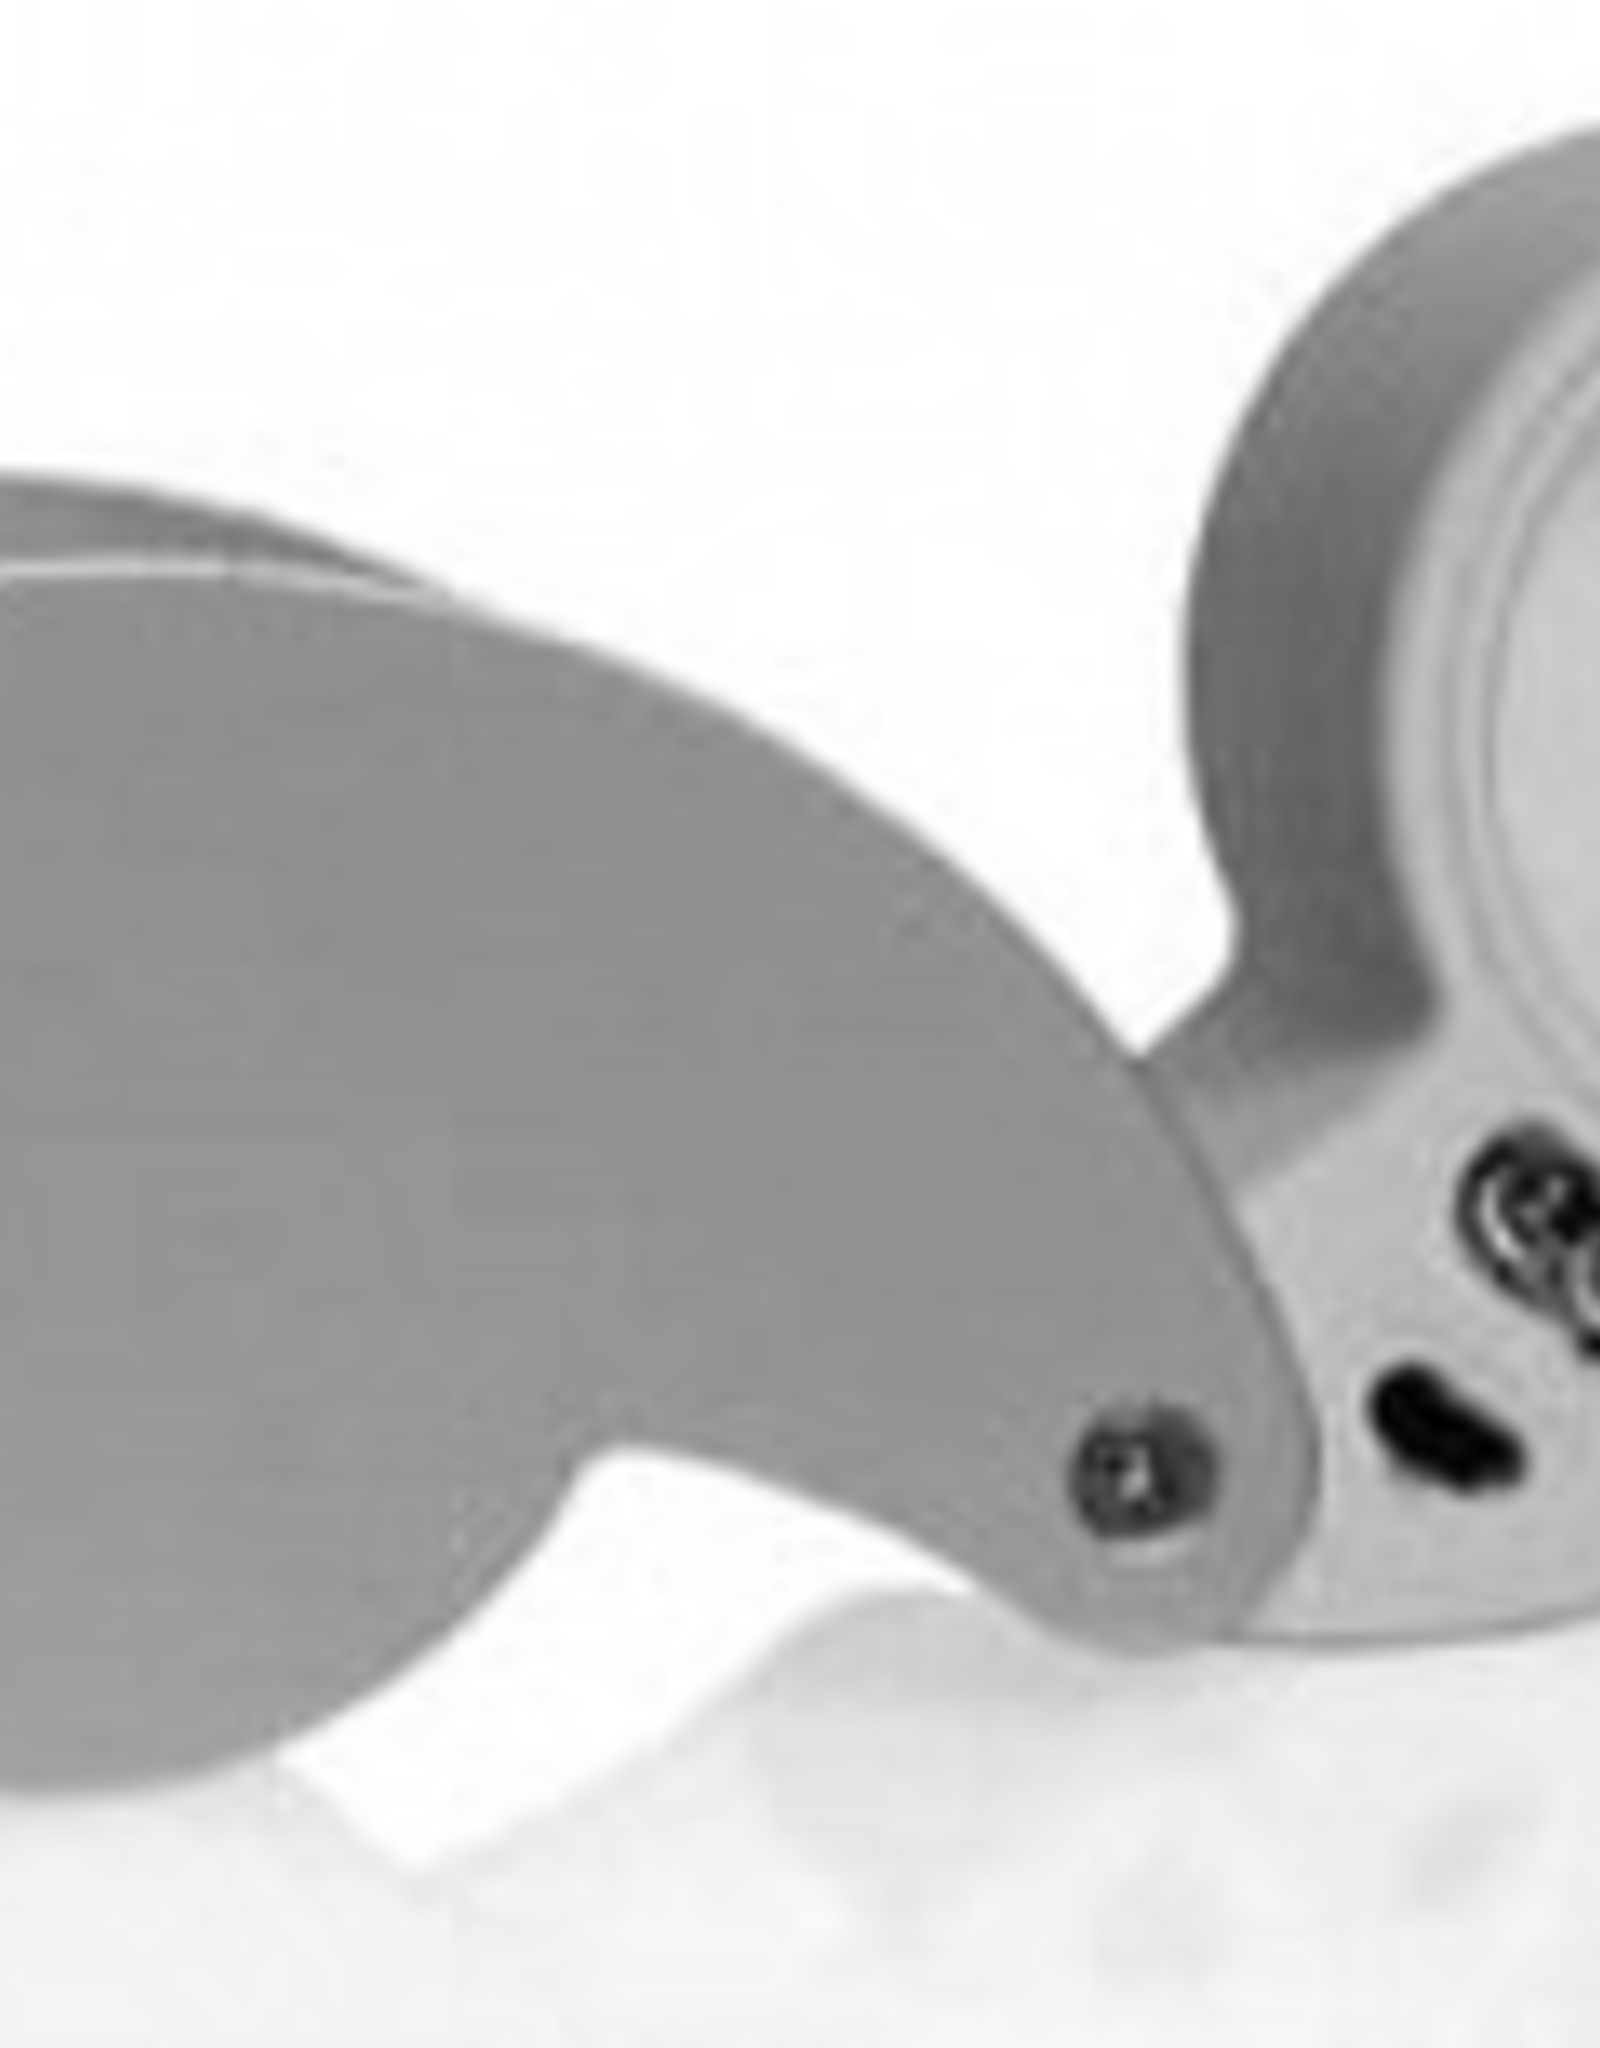 ACTIVE EYE Magnifier Loupe - 30x